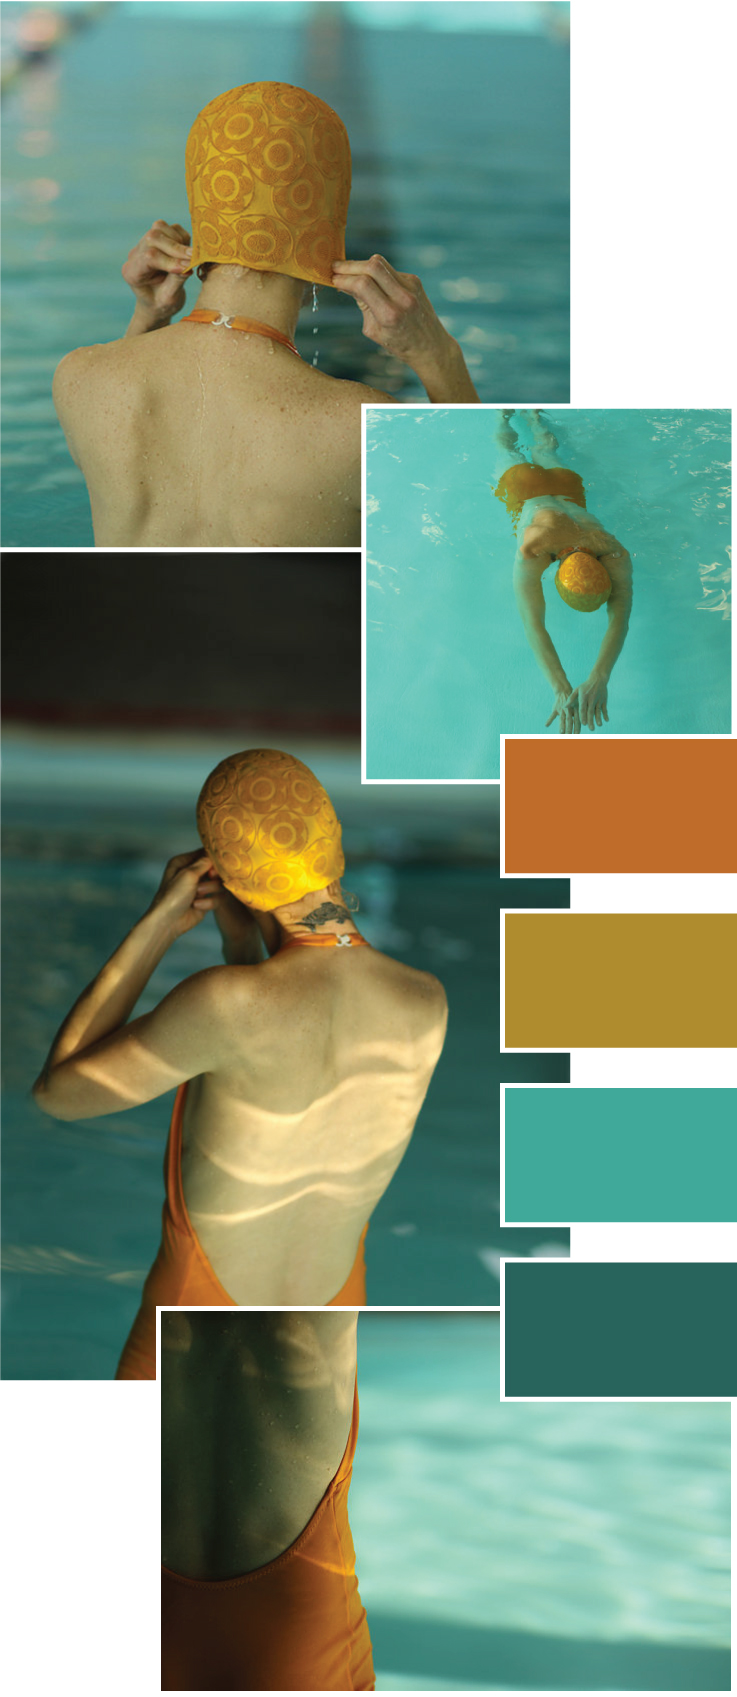 Lucy Snowe Photography. Mid-century Swimmers Collection | www.alicia-carvalho.com/blog